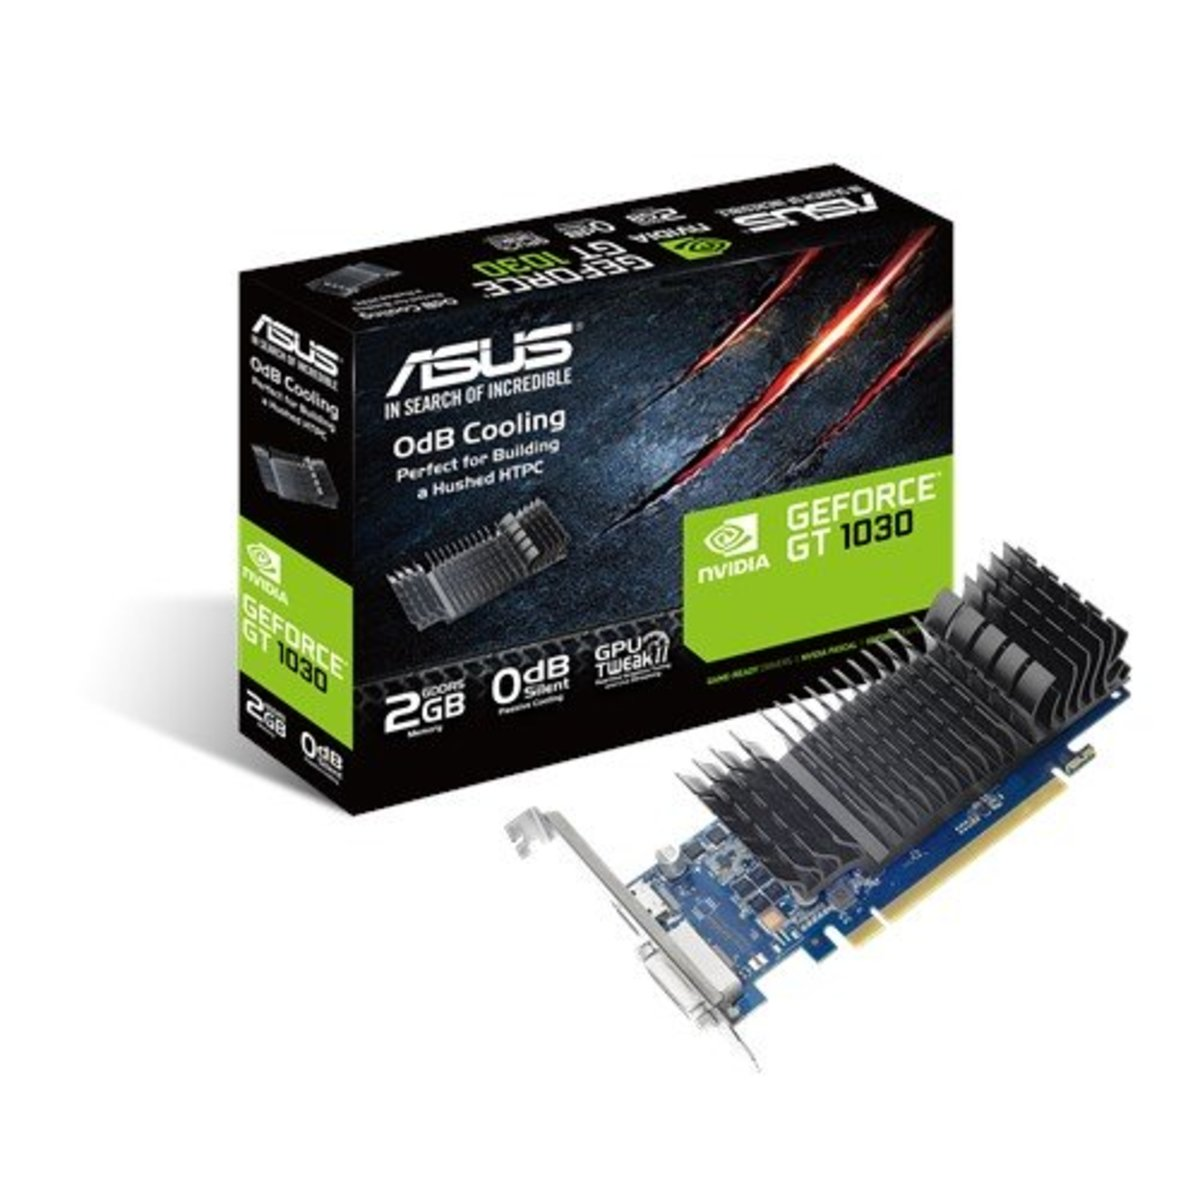 Recommended GPU for this build